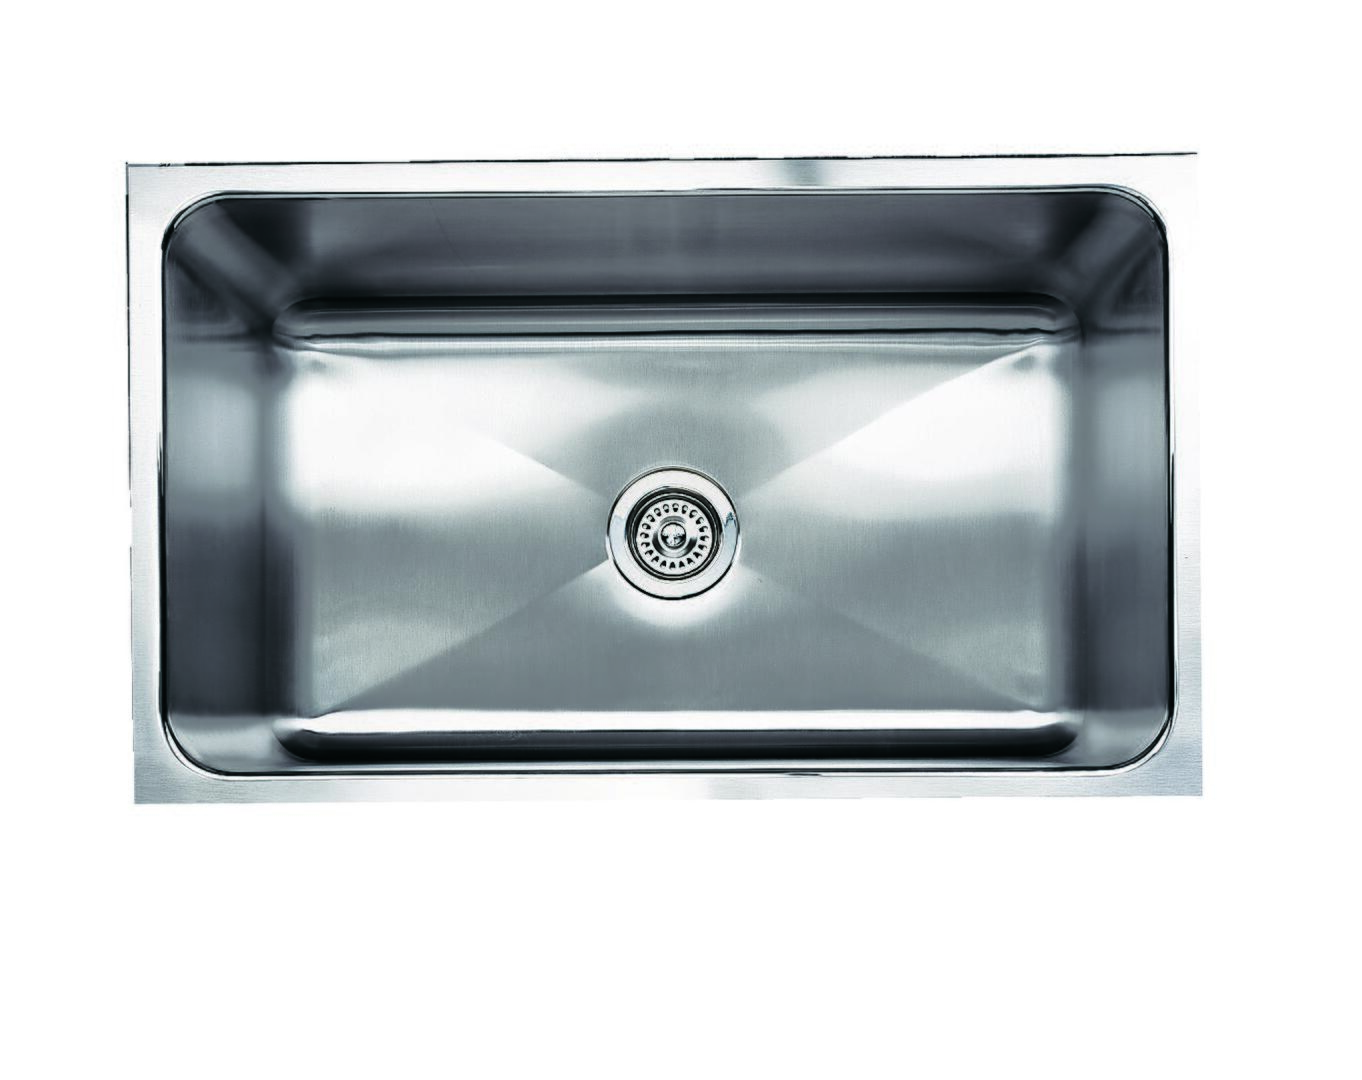 Blanco 440302 Kitchen Sink | Appliances Connection